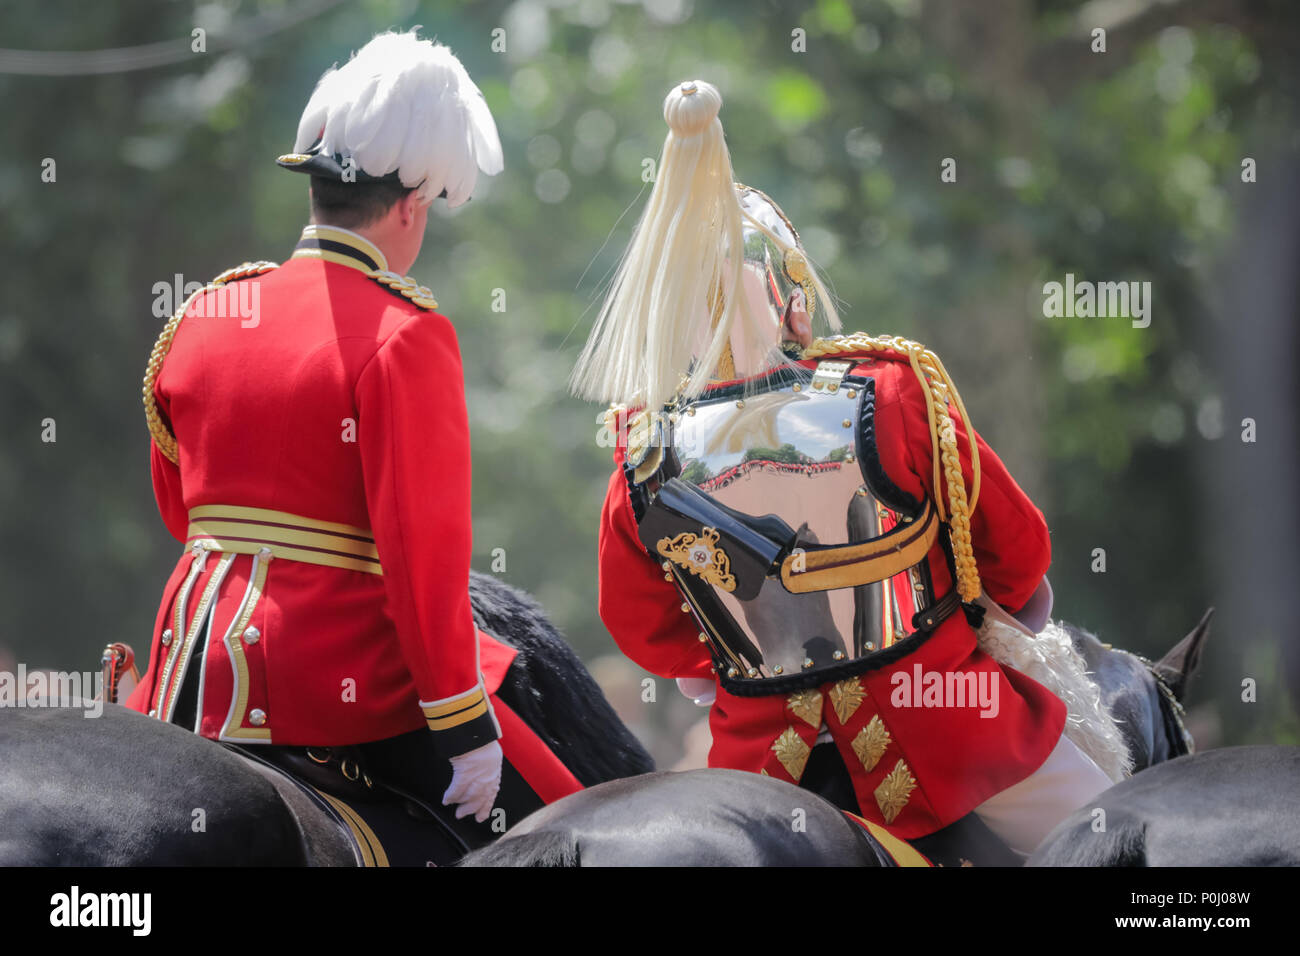 London, UK. 9th June 2018. Retired Chief of the Defence Staff, Field Marshal Lord Guthrie, 79, who began his military career in 1959 with the Welsh Guards, appears unwell as he passes Clarence House during the procession along The Mall at Trooping the Colour, The Queens Birthday Parade. London. Credit: amanda rose/Alamy Live News - Stock Image